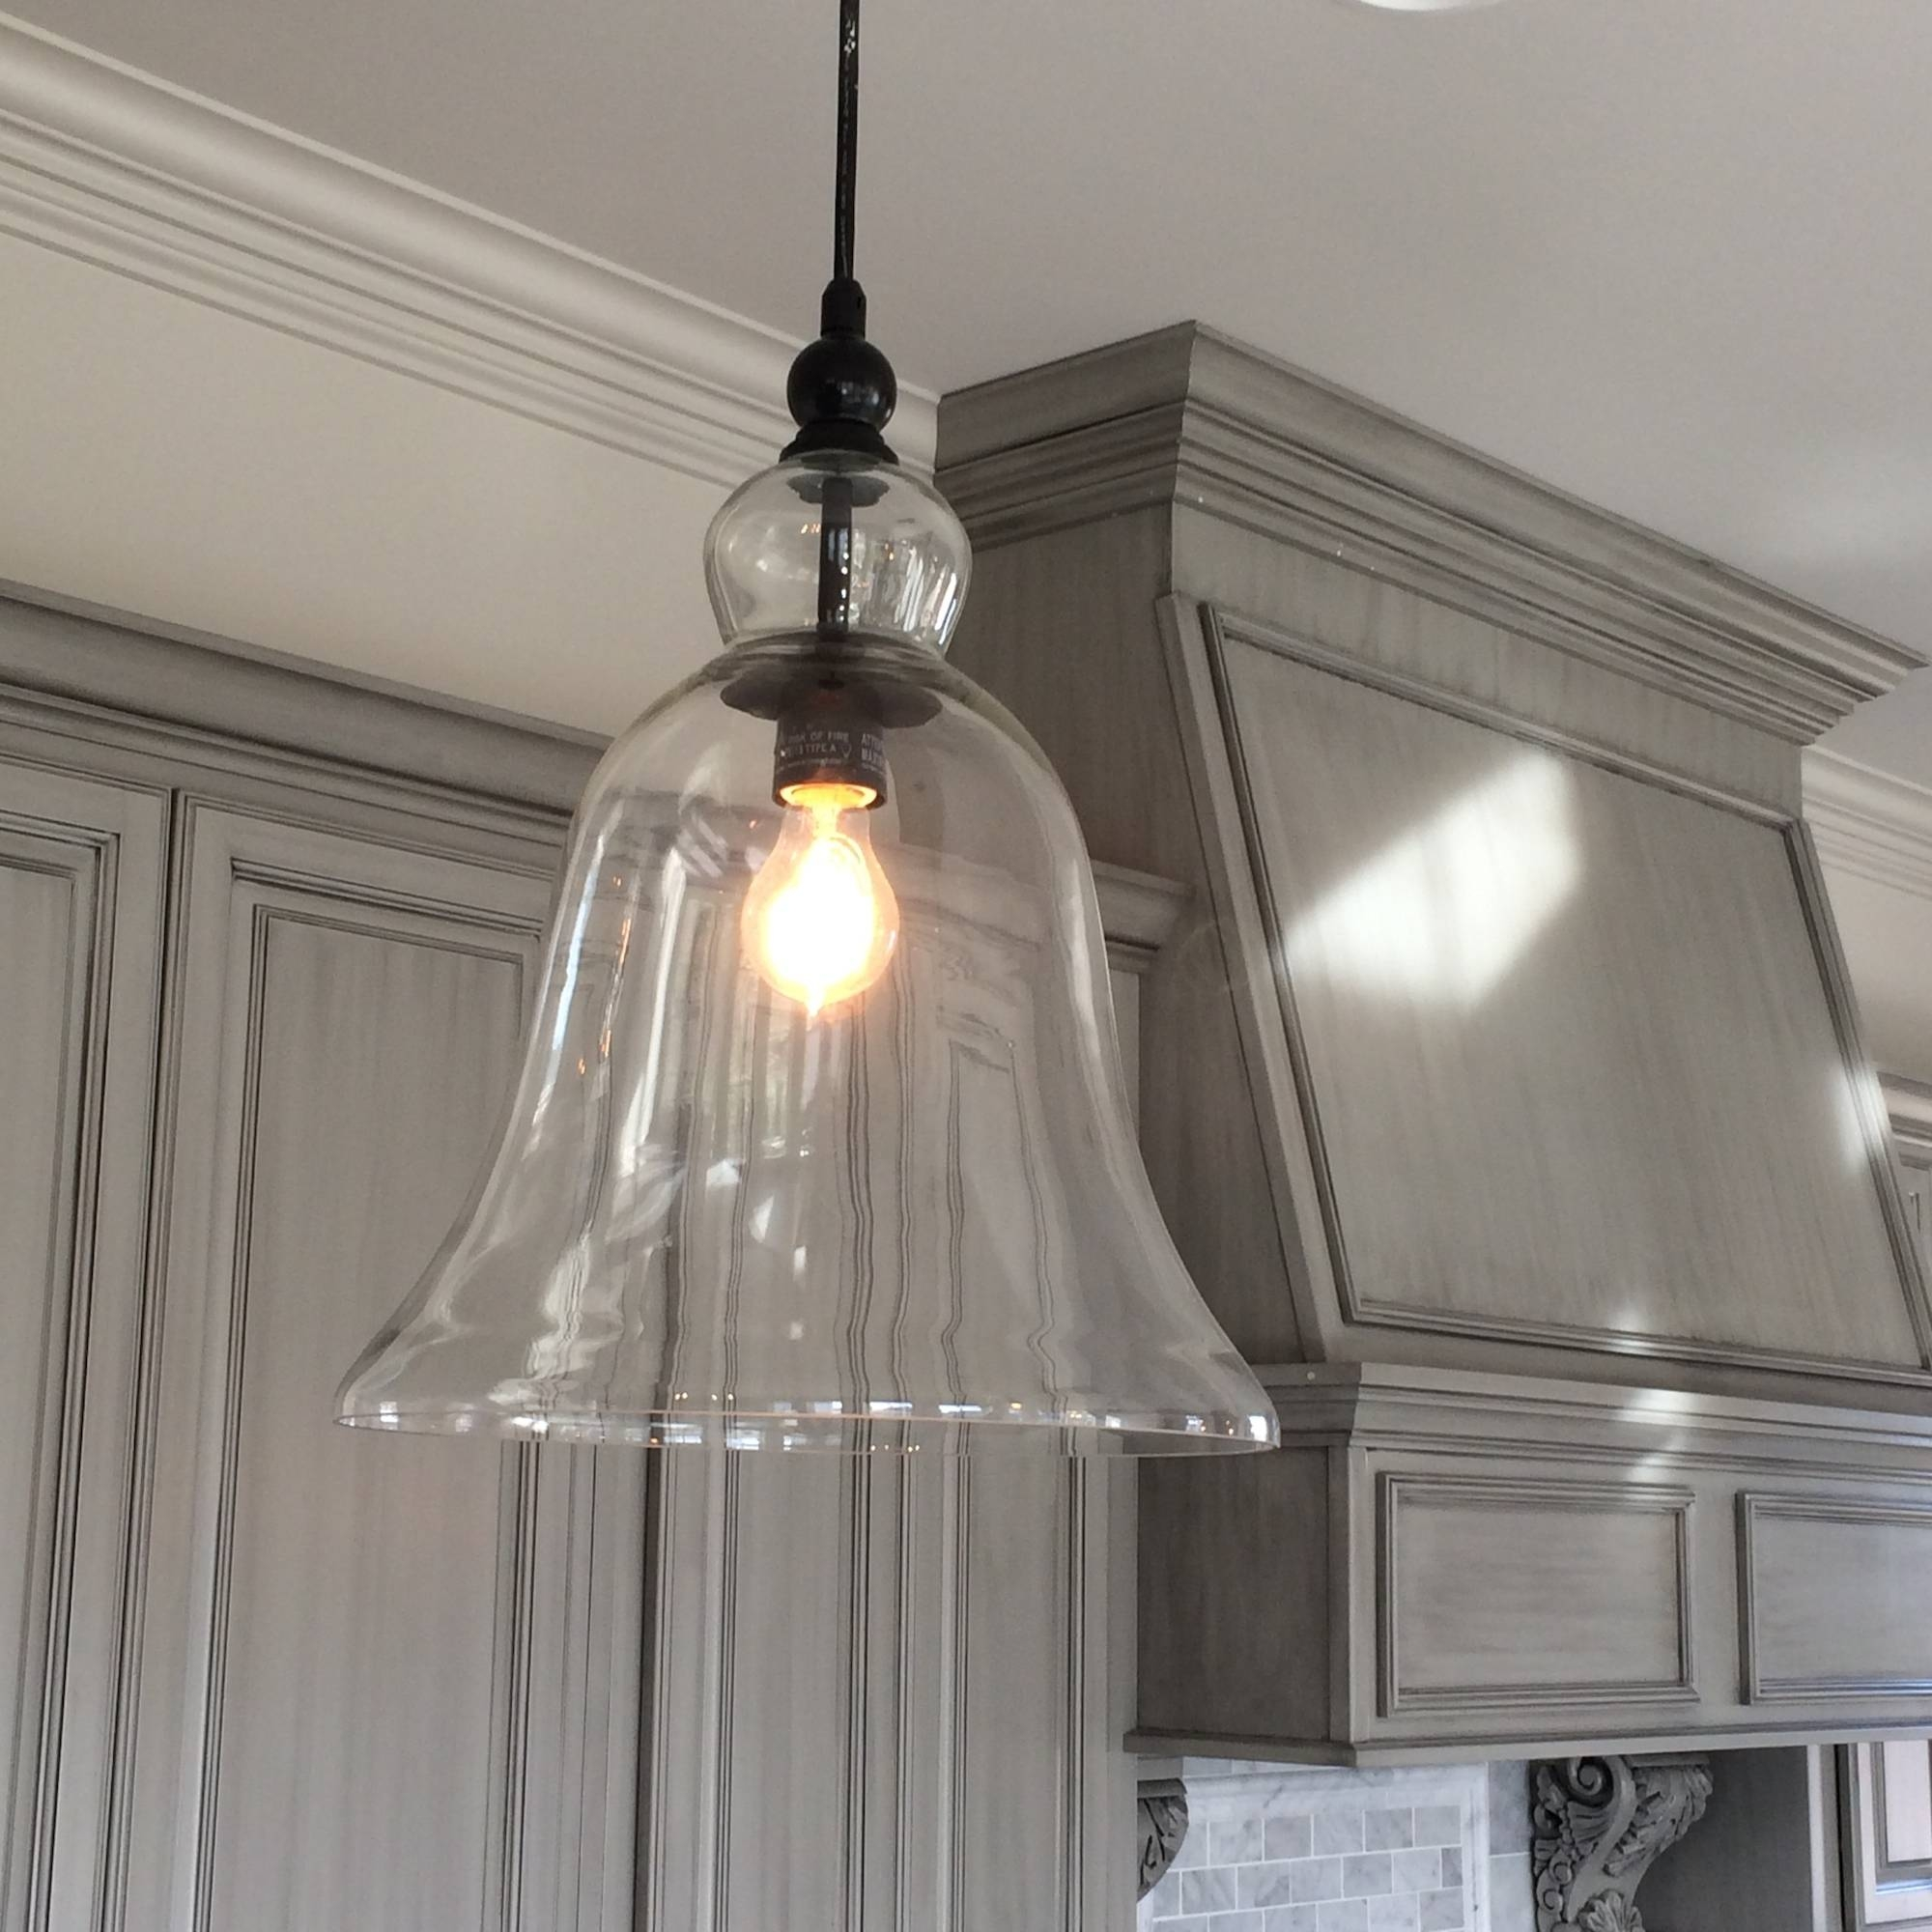 Pendant Lighting Ideas: Incredible Large Glass Pendant Lights Pertaining To Long Hanging Pendant Lights (View 7 of 15)